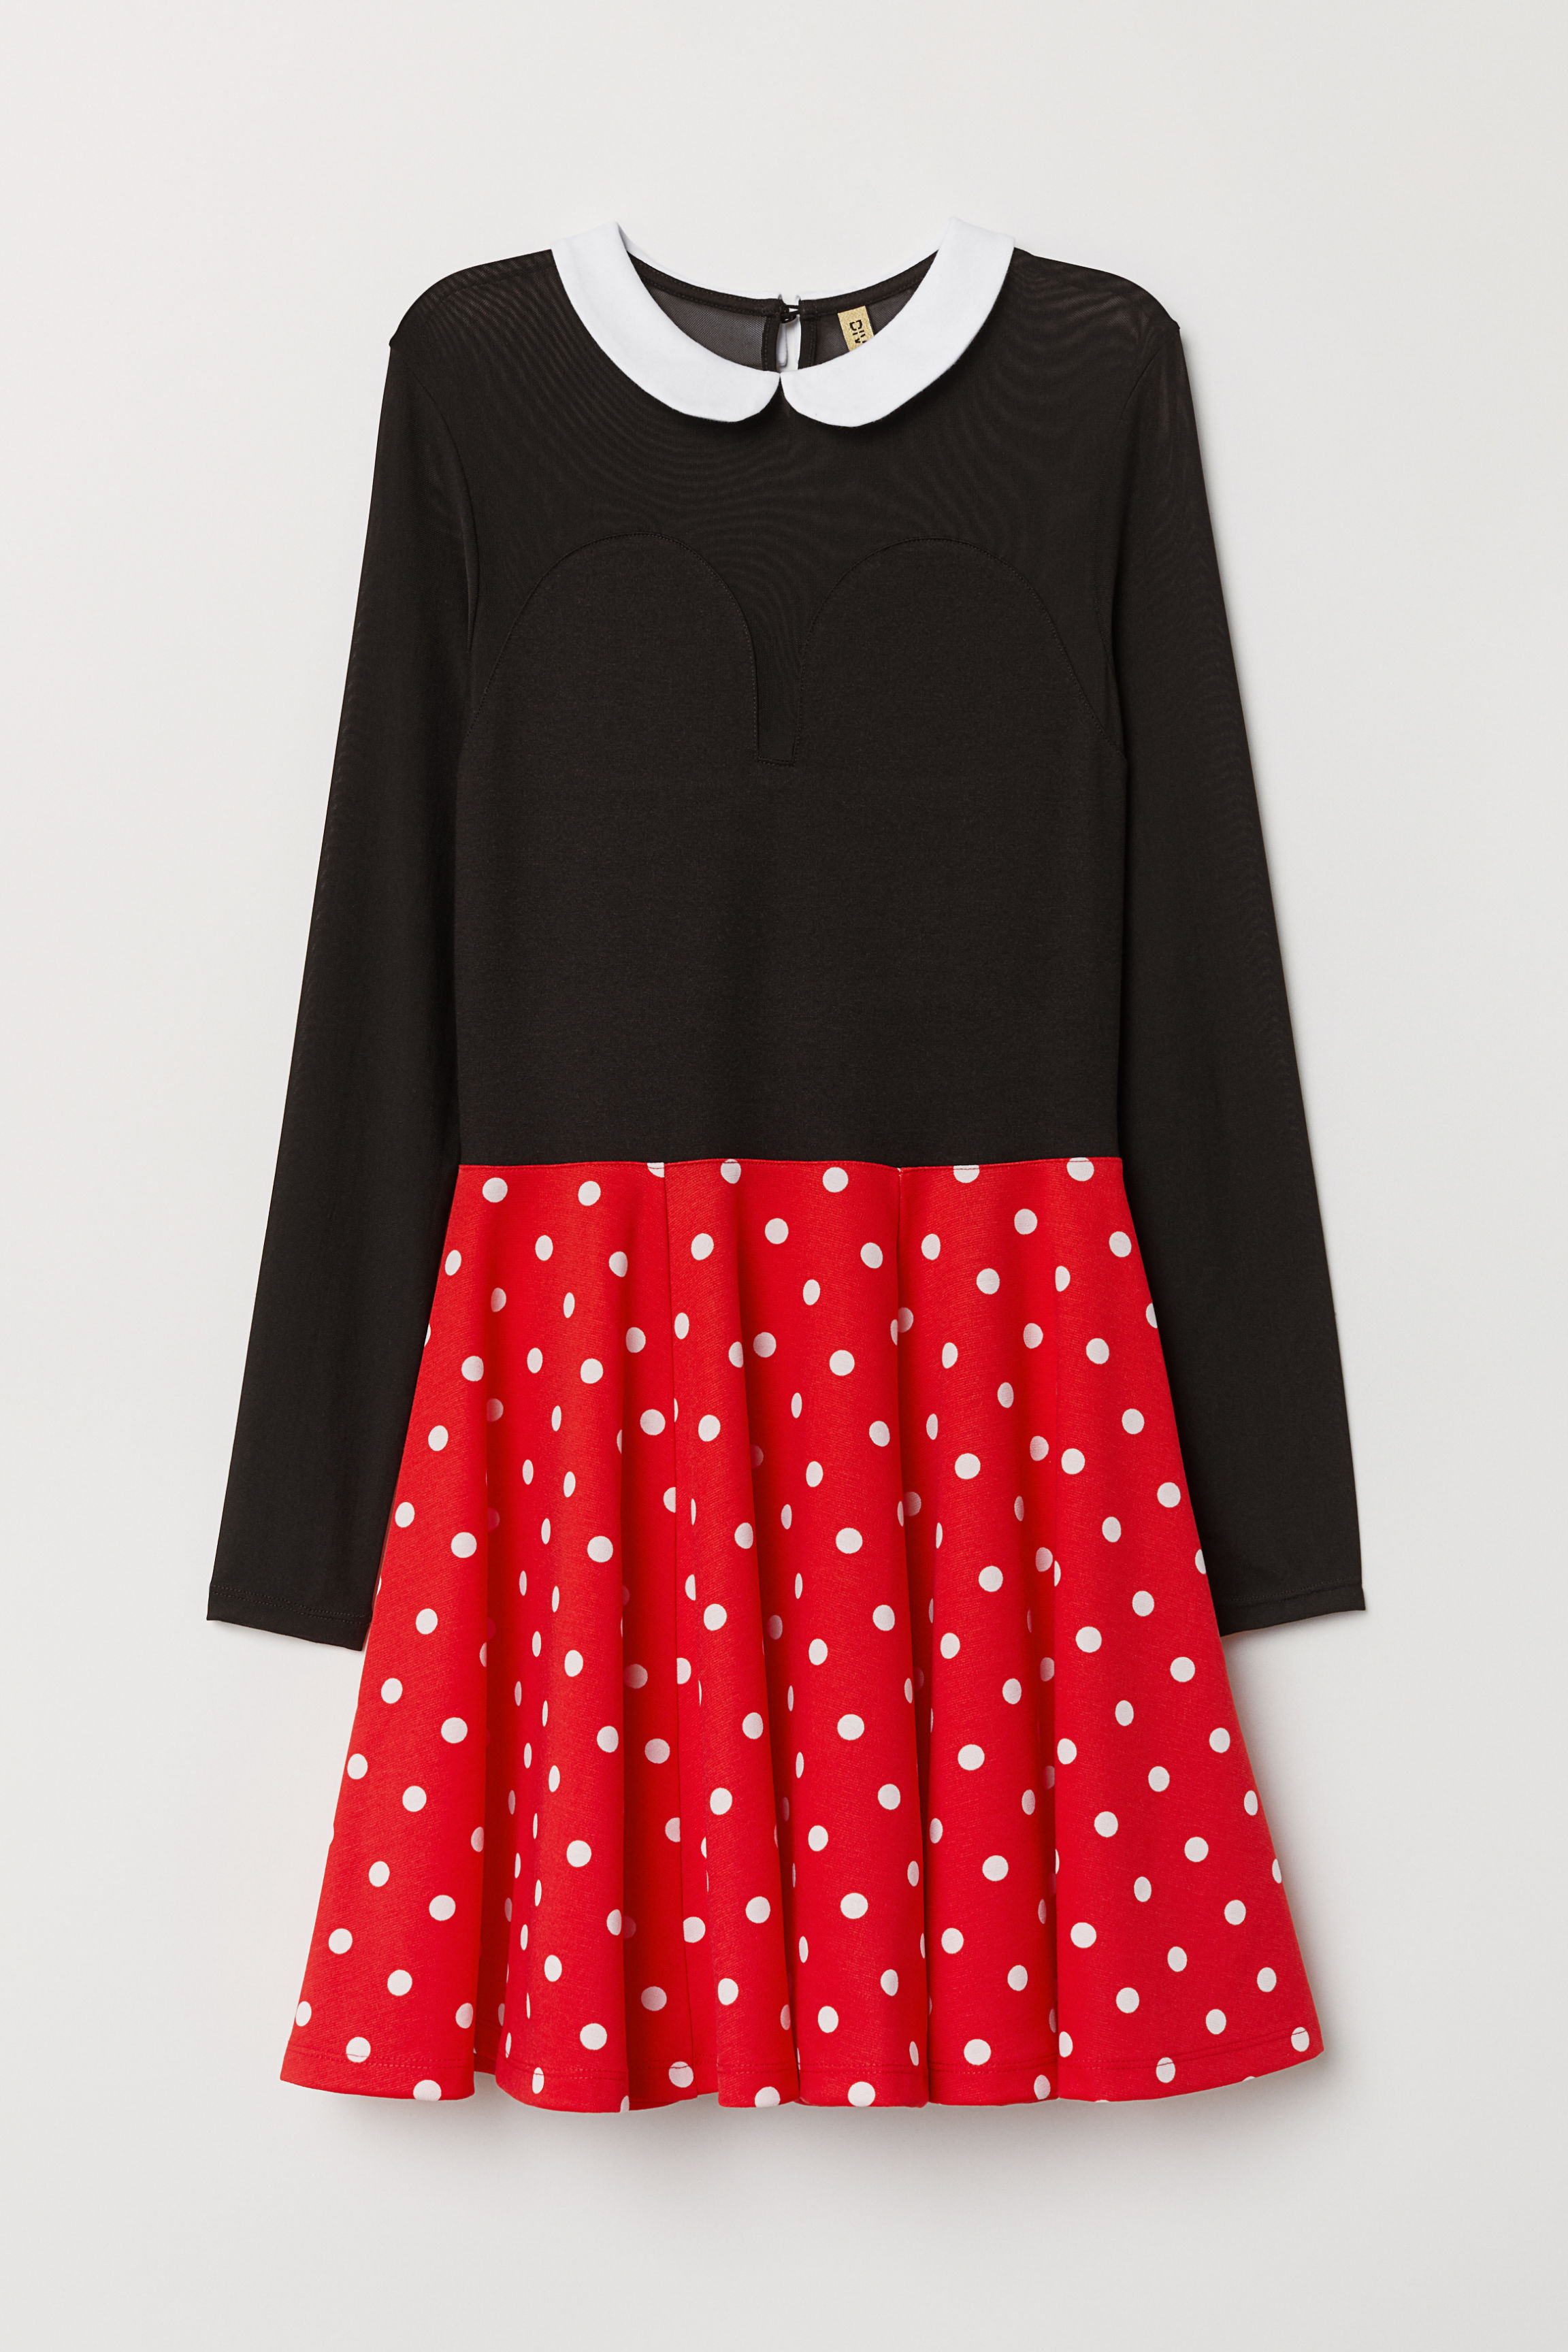 Minnie Mouse Fancy Dress Plus Size Uk - raveitsafe